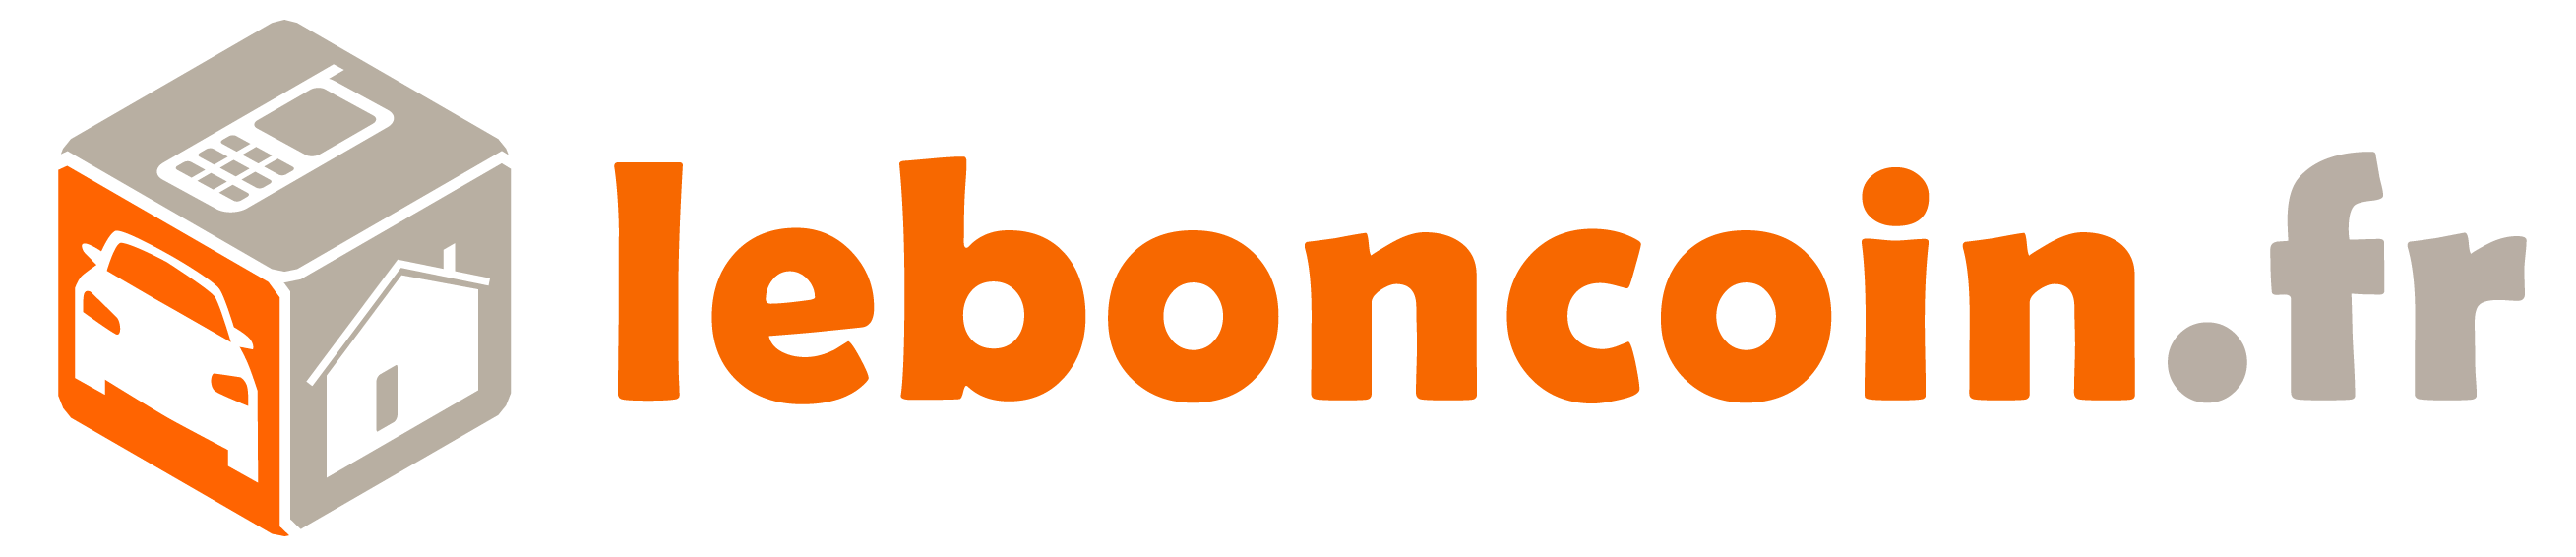 boncoin.fr immobilier